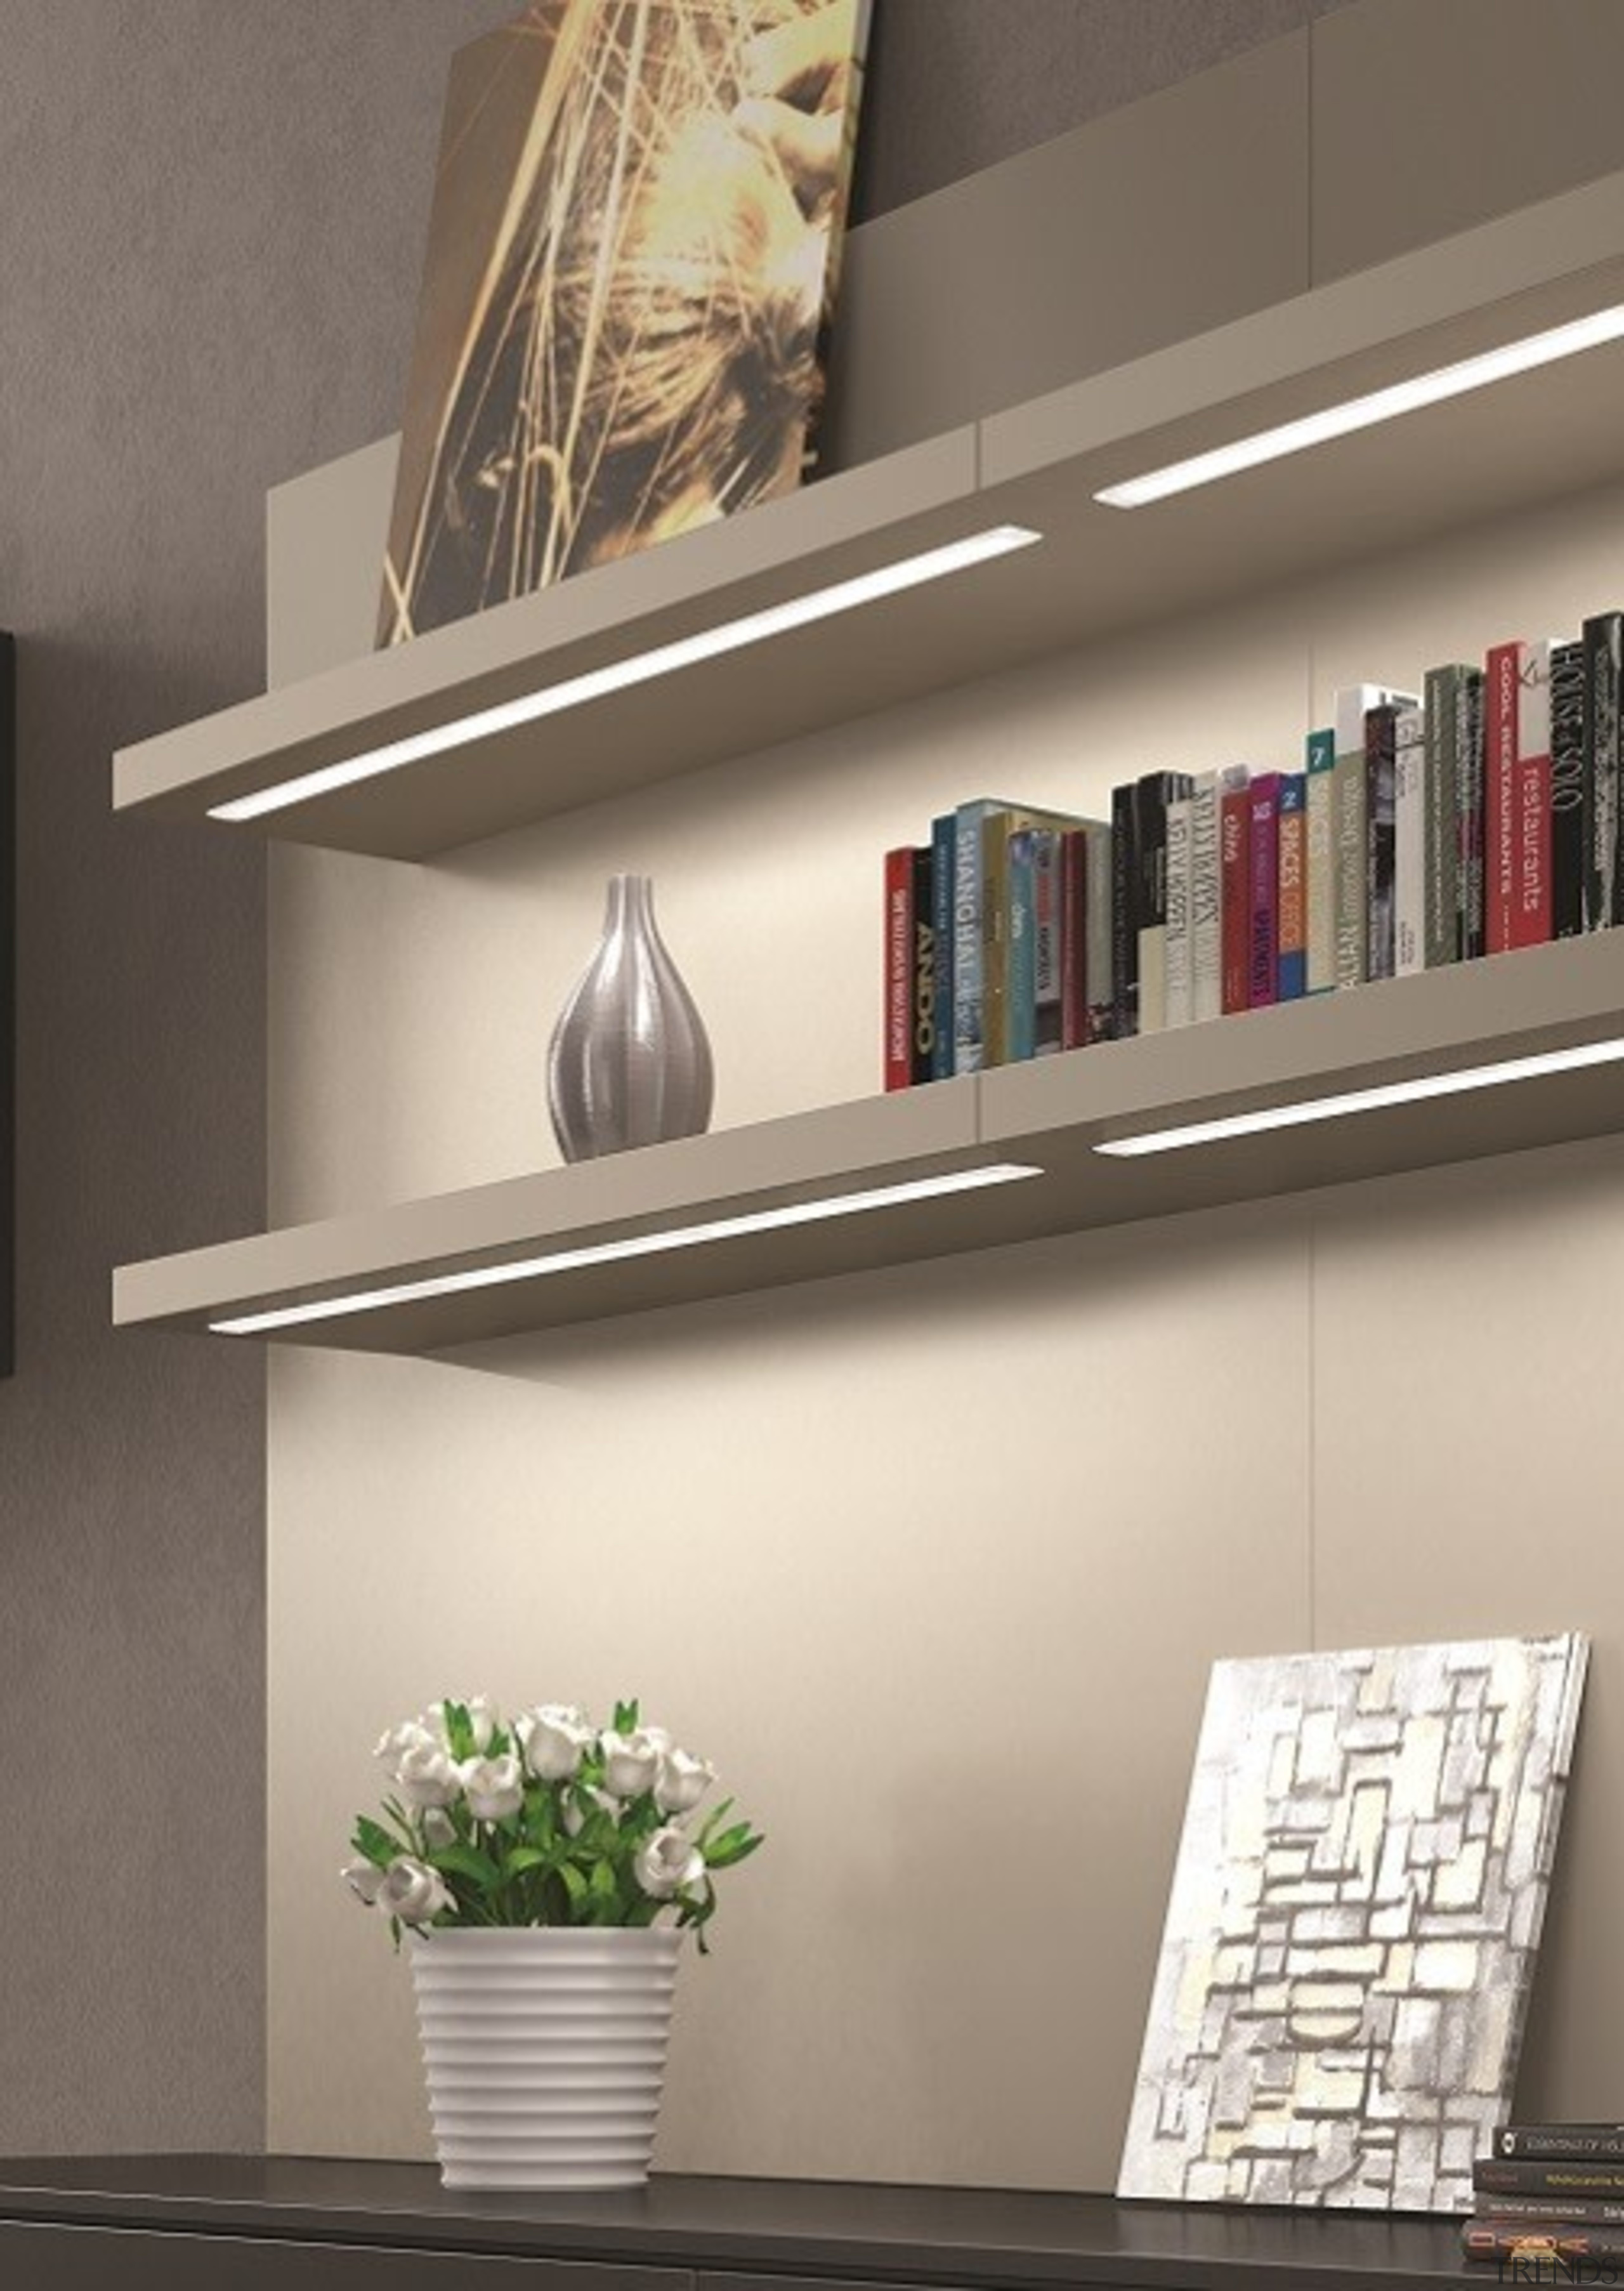 Designed in Italy to comply with Australian/New Zealand bookcase, furniture, interior design, product design, shelf, shelving, wall, gray